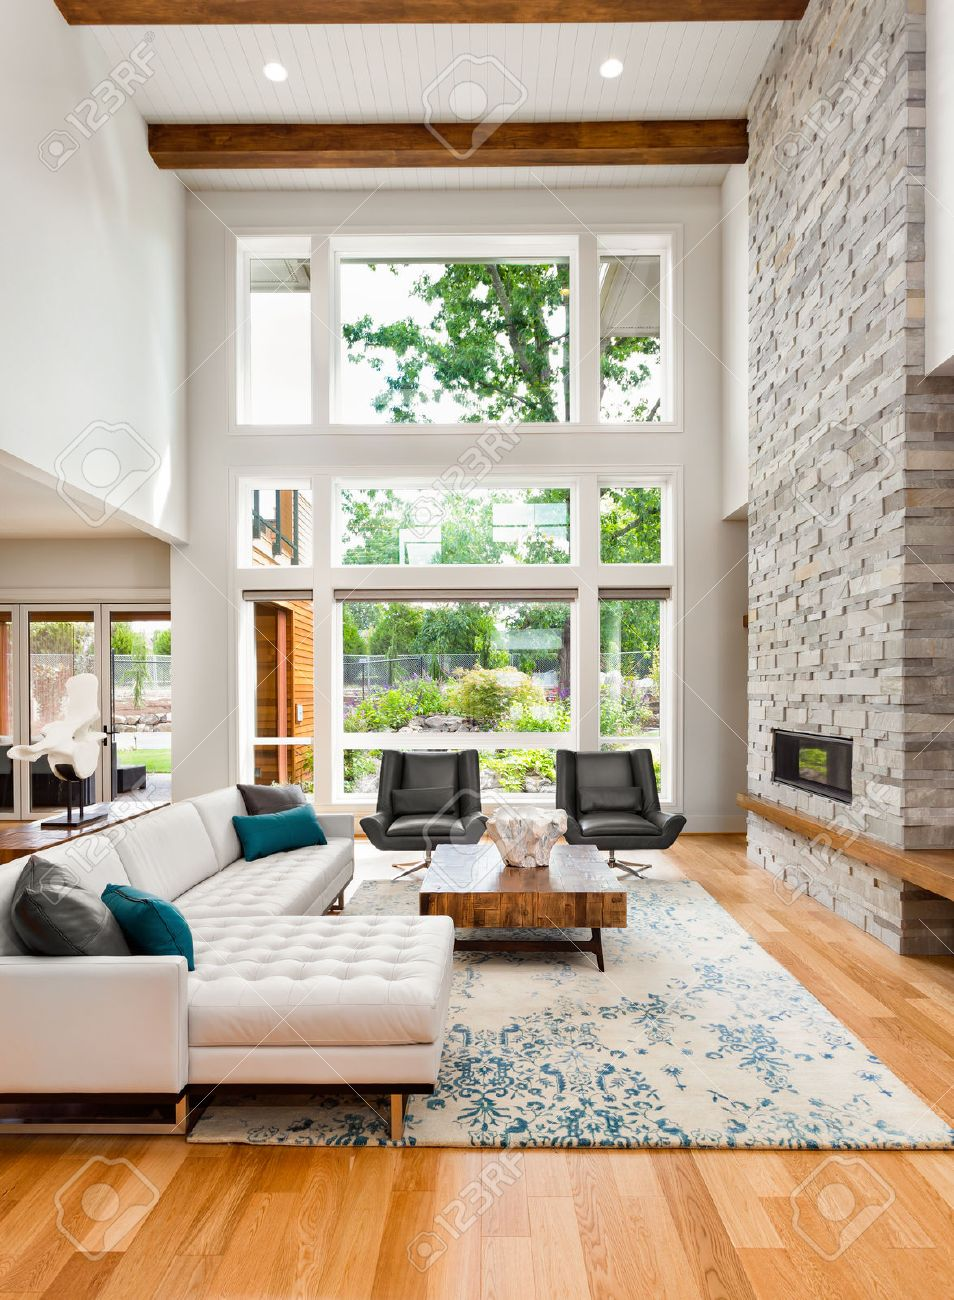 living room interior with hardwood floors  huge bank of windows tall vaulted ceiling Living Room Interior With Hardwood Floors Huge Bank Of Windows